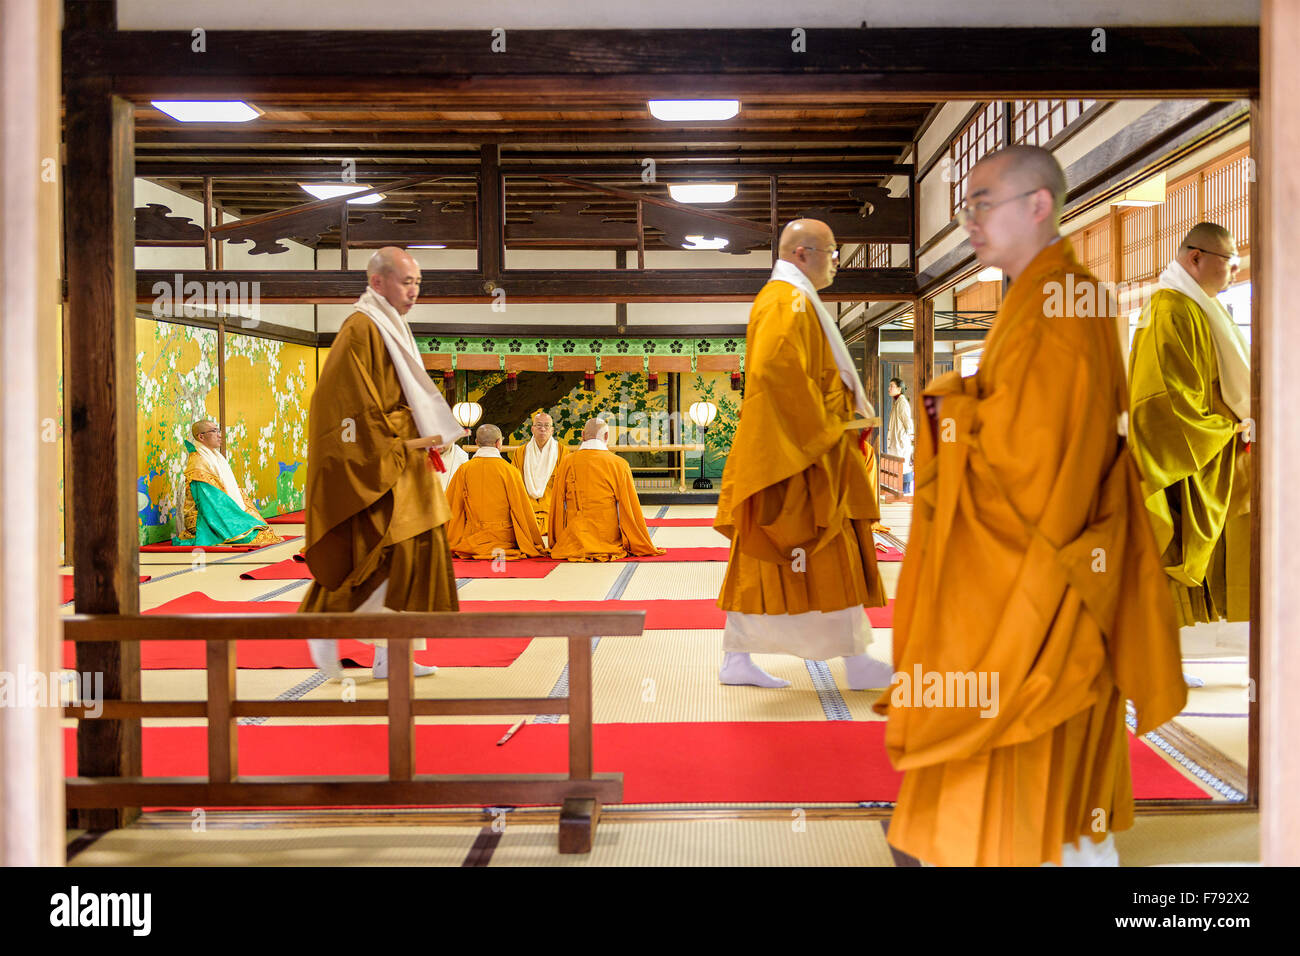 KYOTO, JAPAN - NOVEMBER 21, 2015: Monks peform rites at Chishakuin in Kyoto. - Stock Image